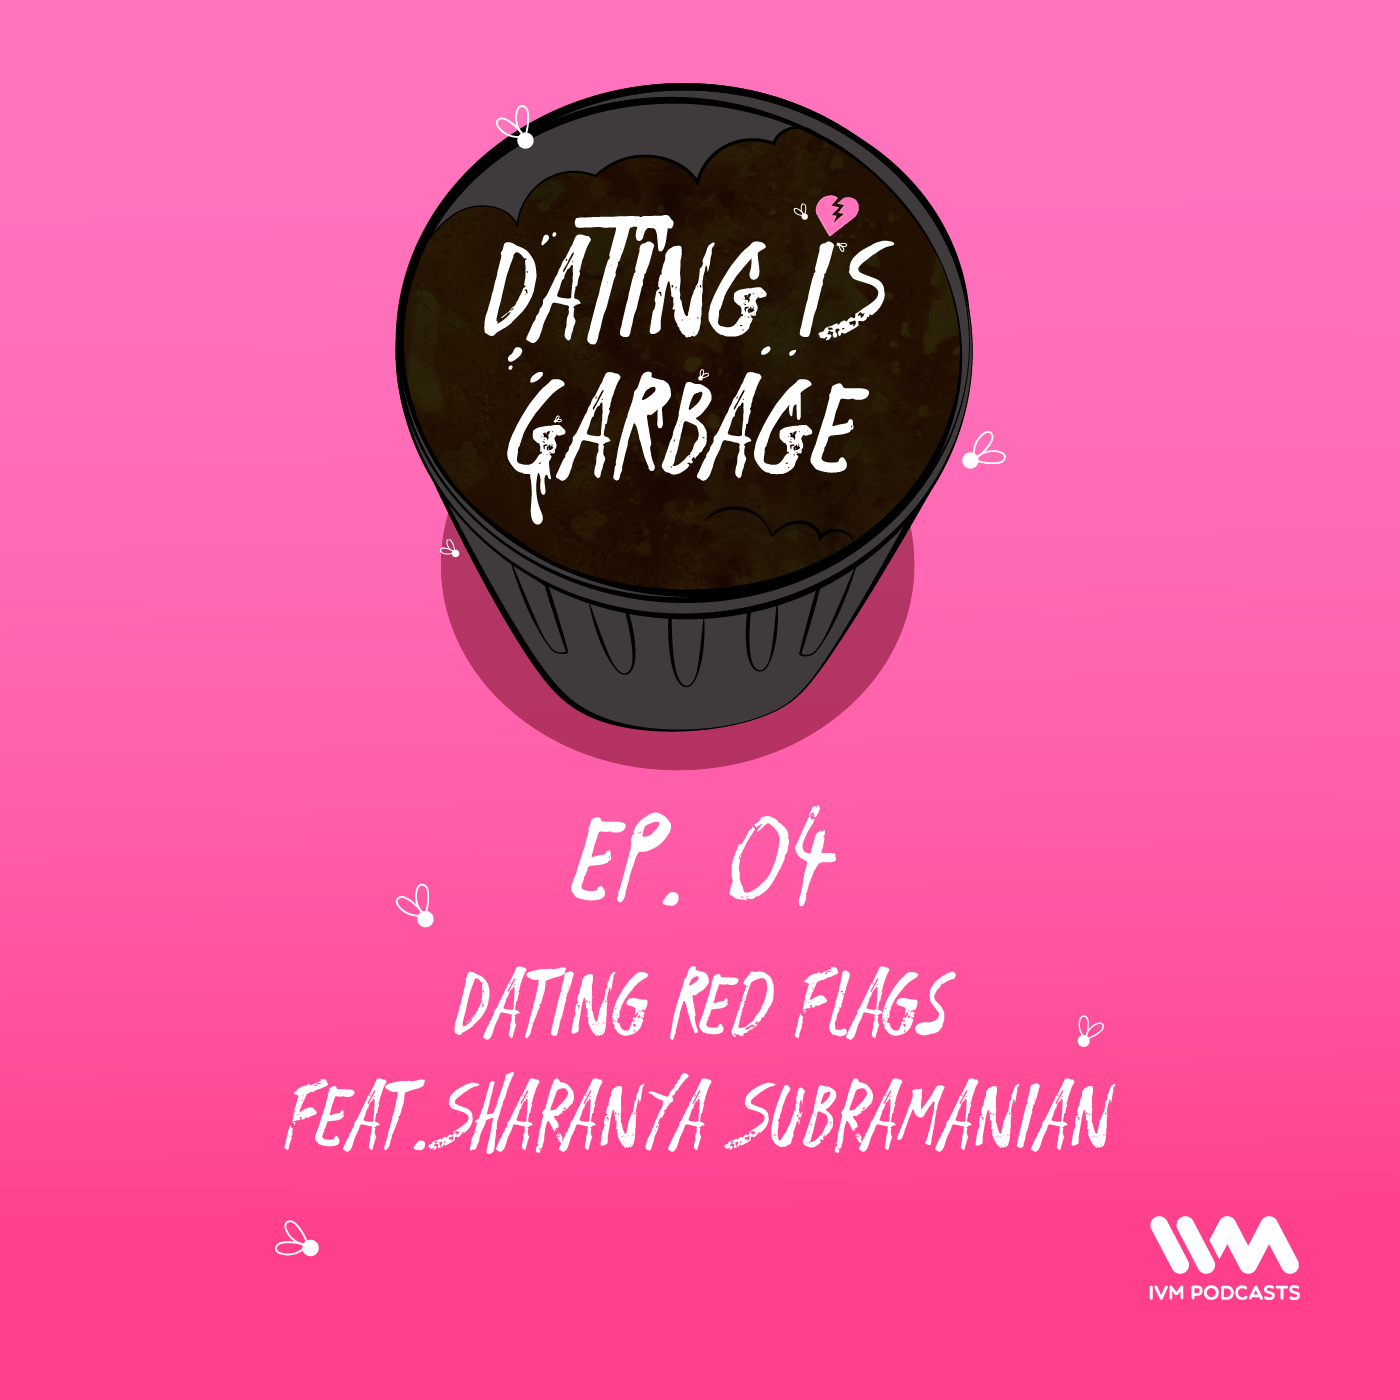 Ep. 04: Dating Red Flags